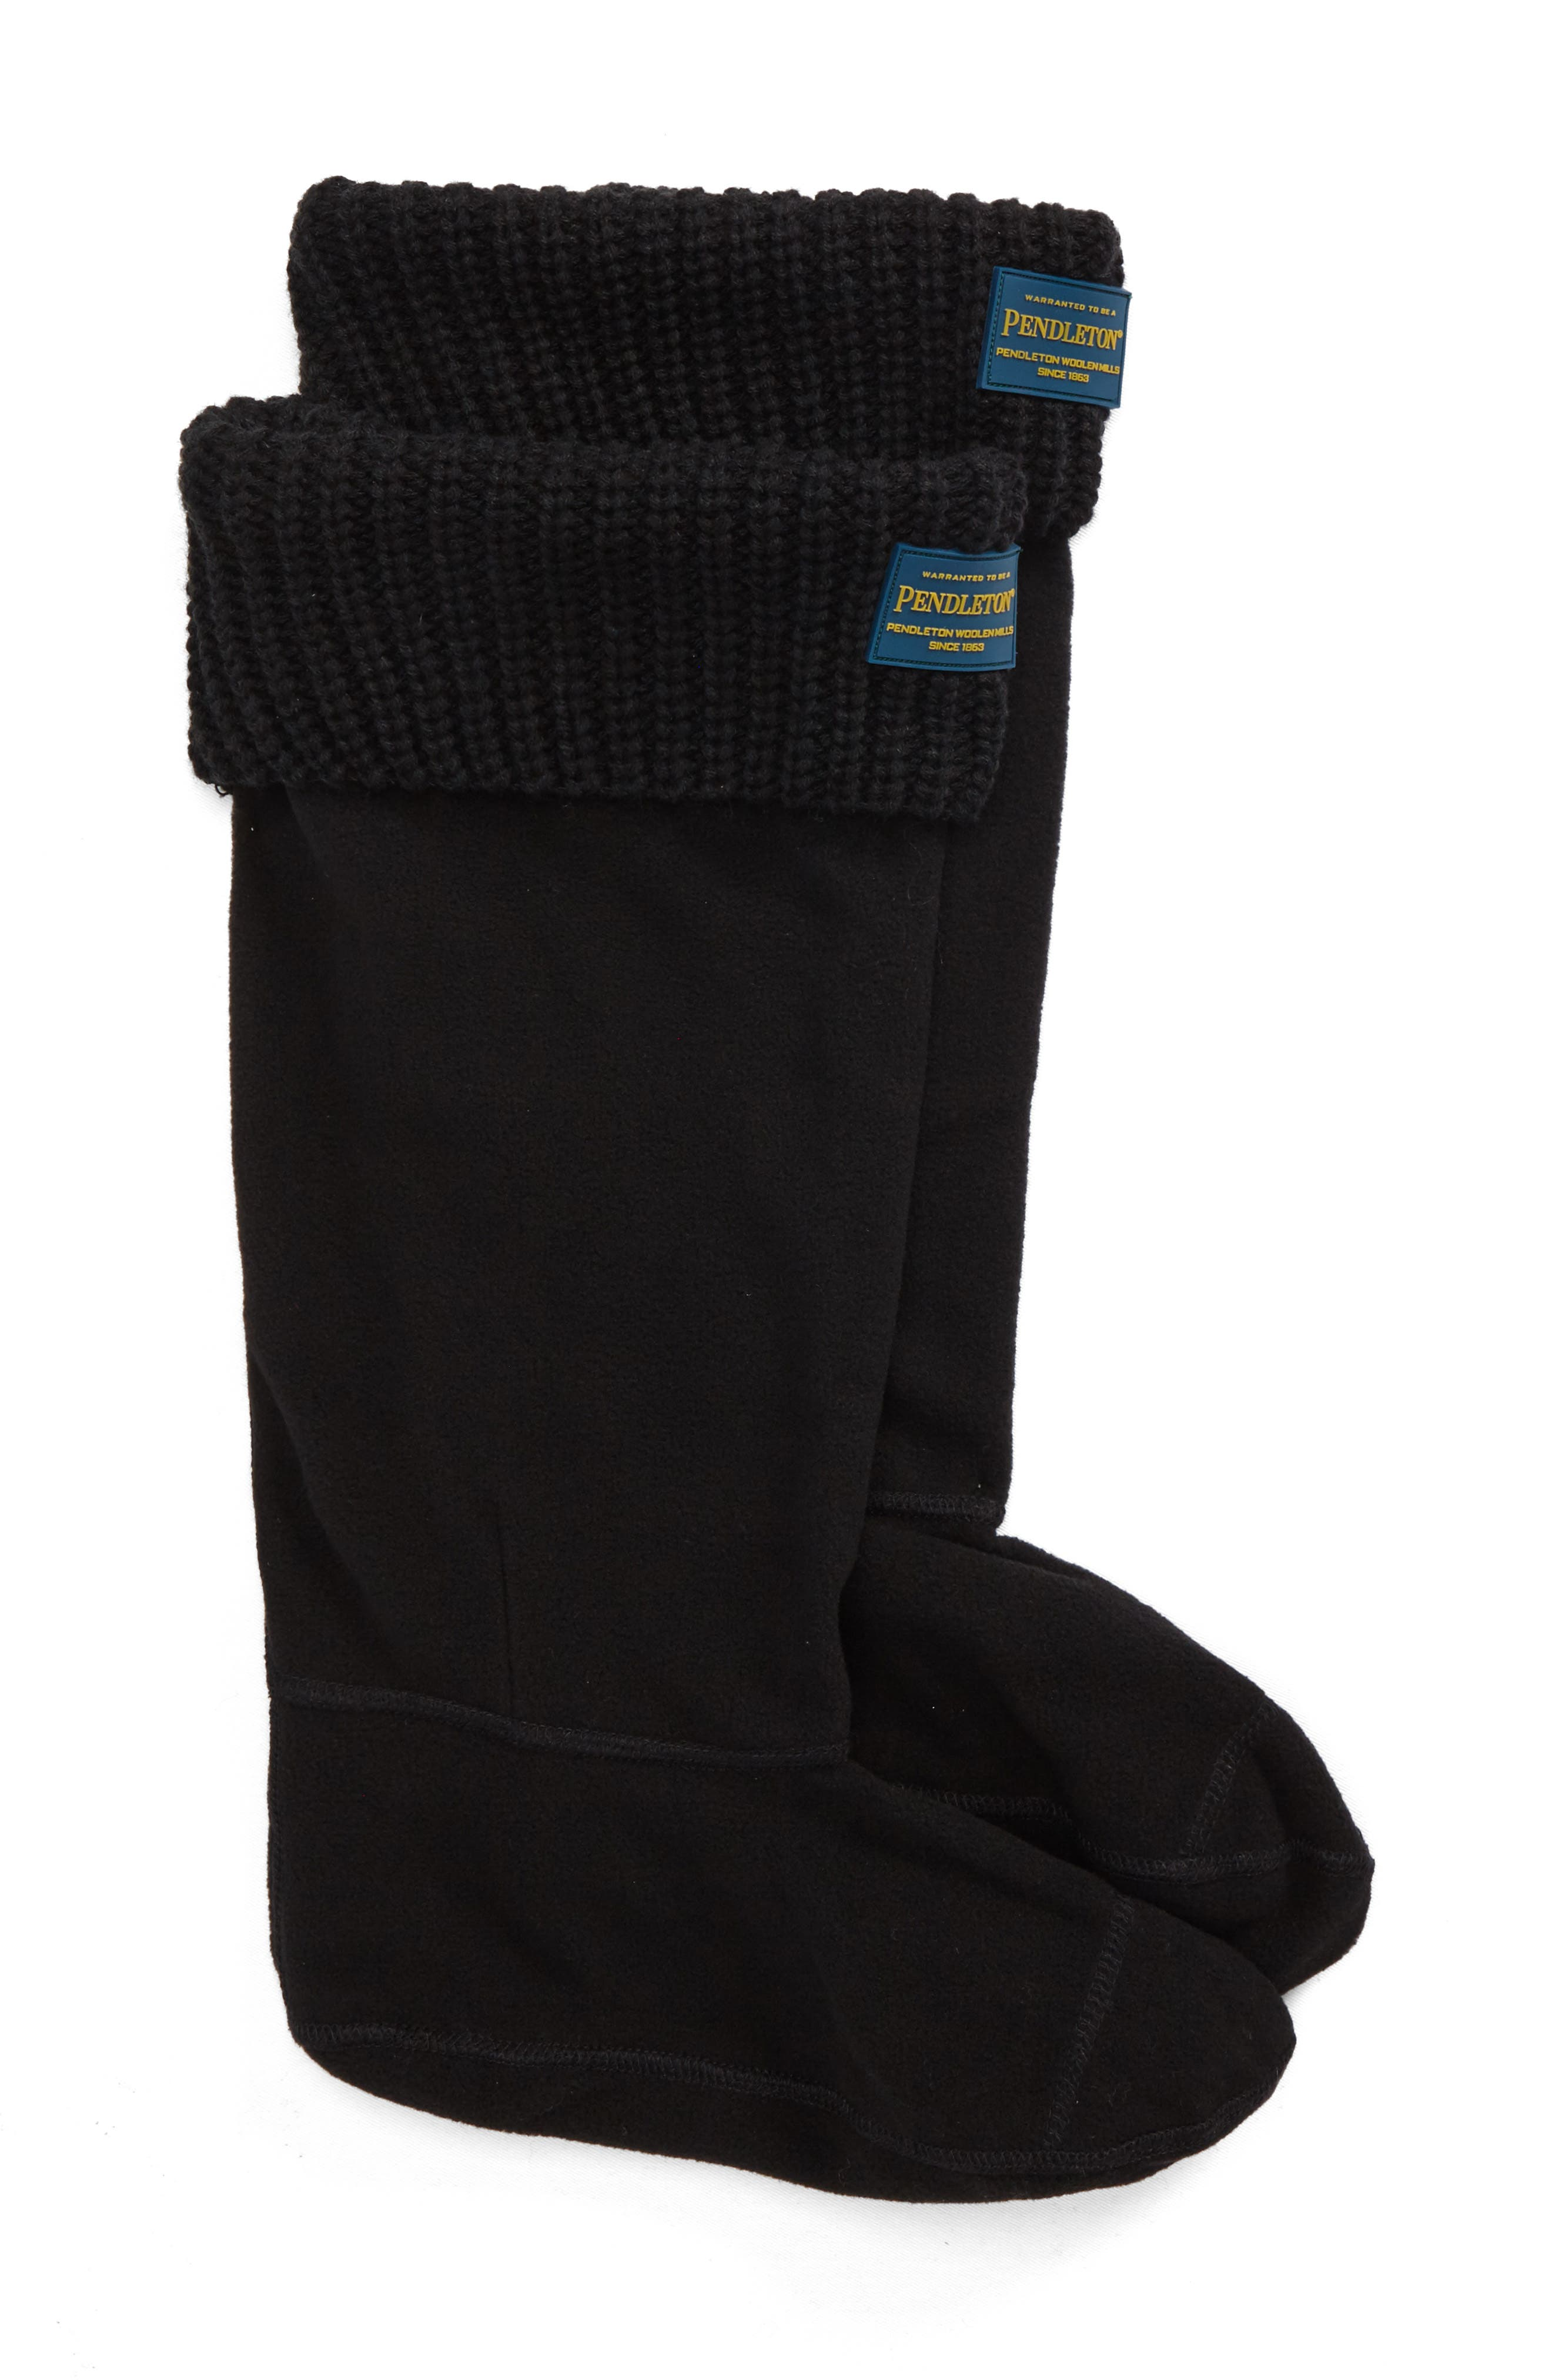 Pendleton Shaker Stitch Tall Boot Socks,                         Main,                         color, BLACK